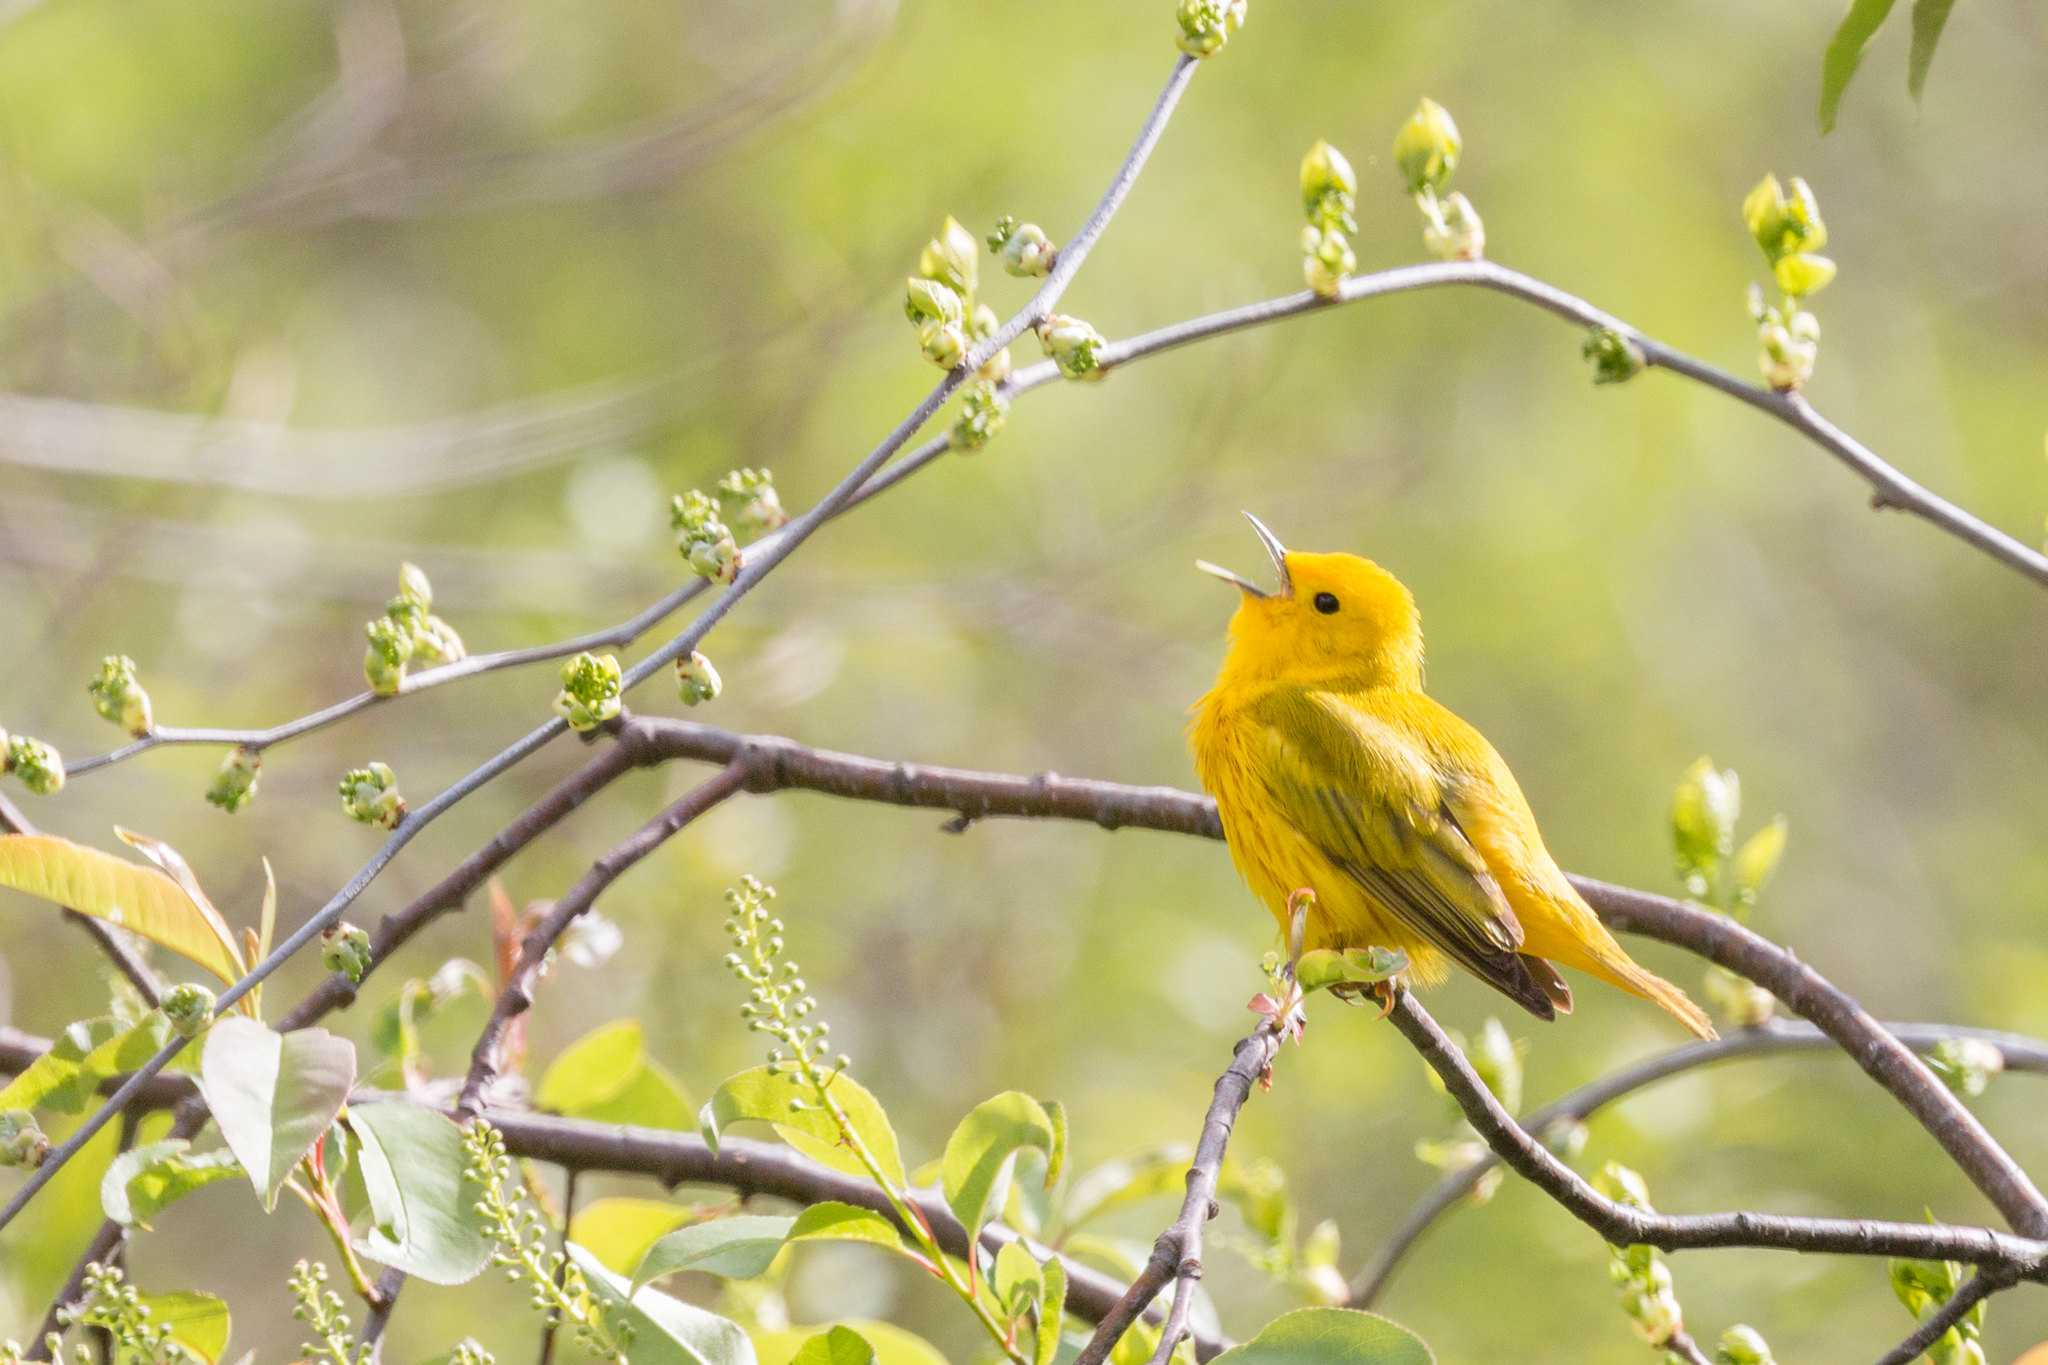 Yellow warbler sitting on a branch and singing.